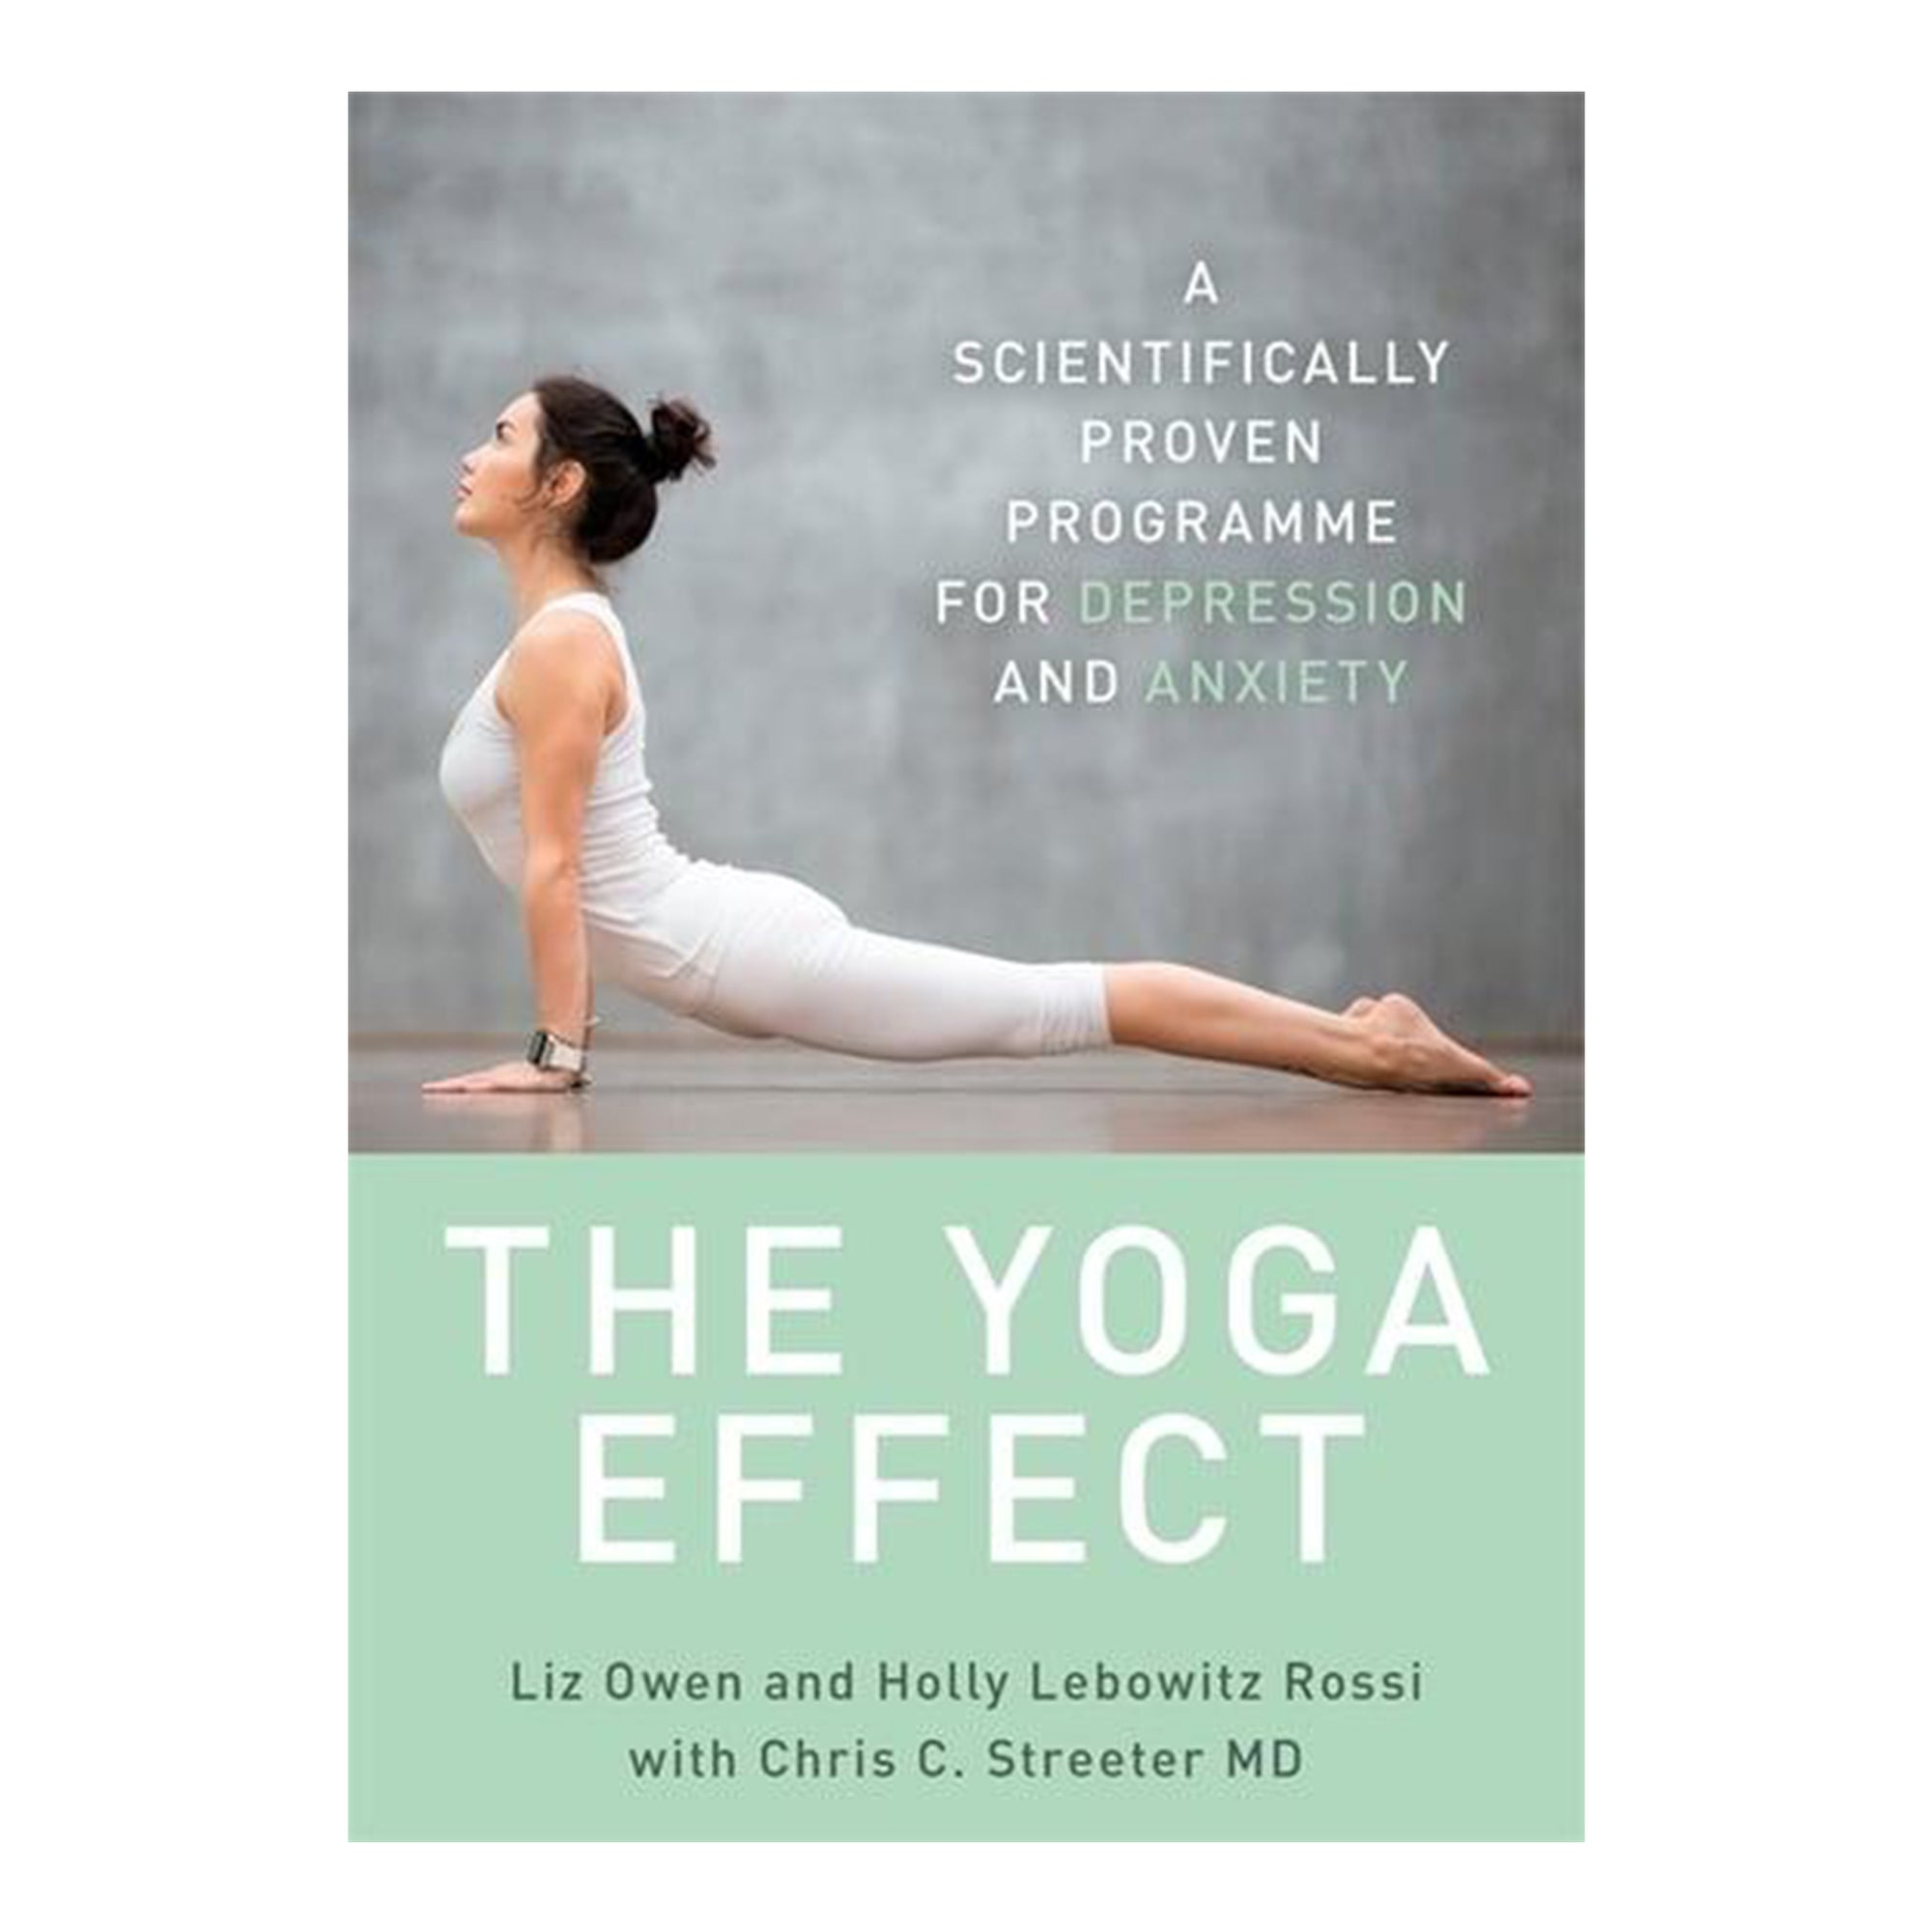 The Yoga Effect Book by Liz Owen, Holly Lebowitz Rossi, Dr Chris Streeter. - Scandi Minimal